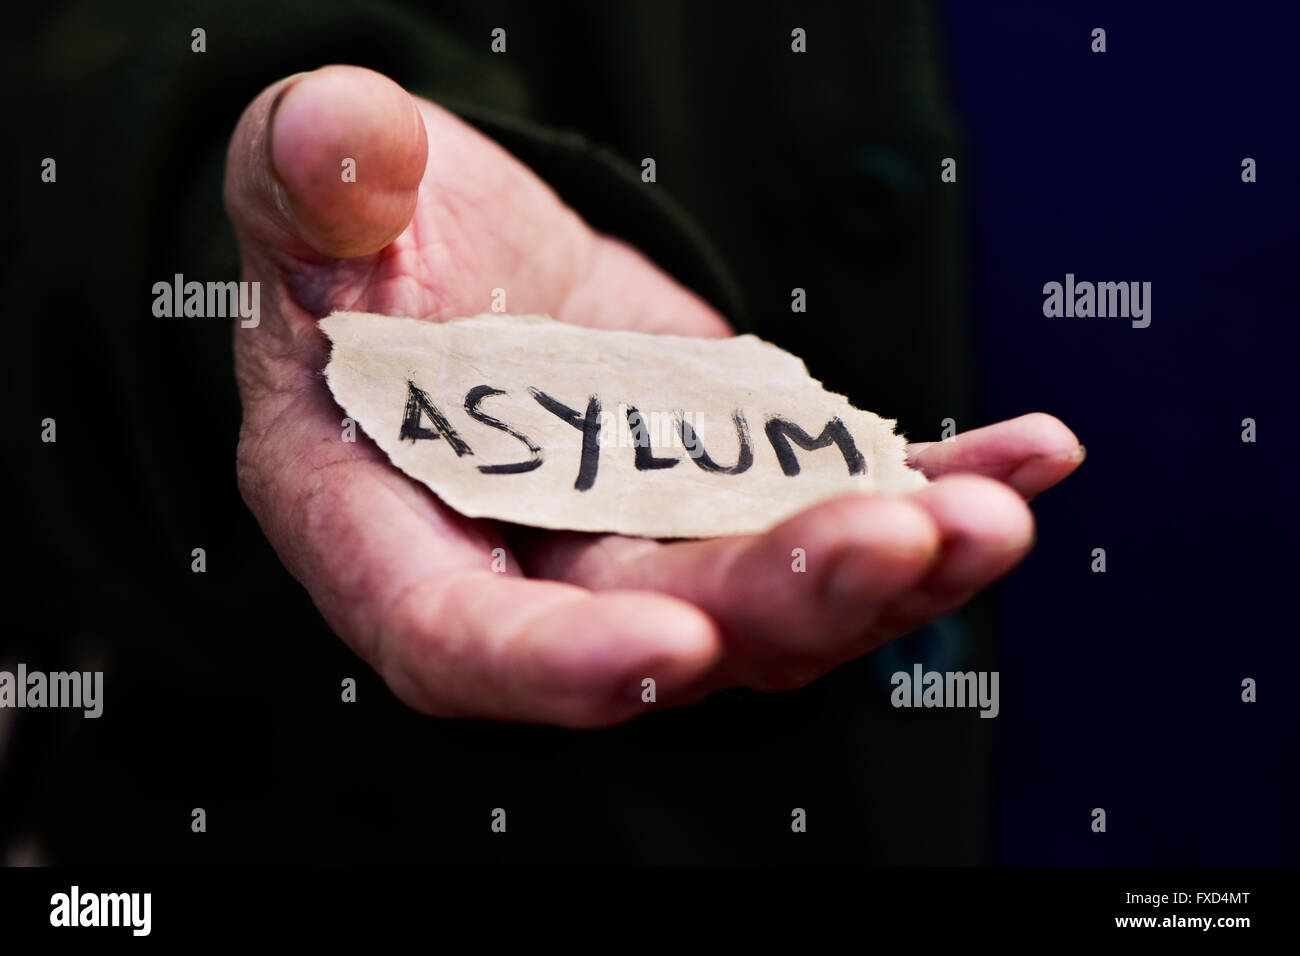 closeup of the hand of an old man with a piece of paper with the word asylum, with a dramatic effect - Stock Image